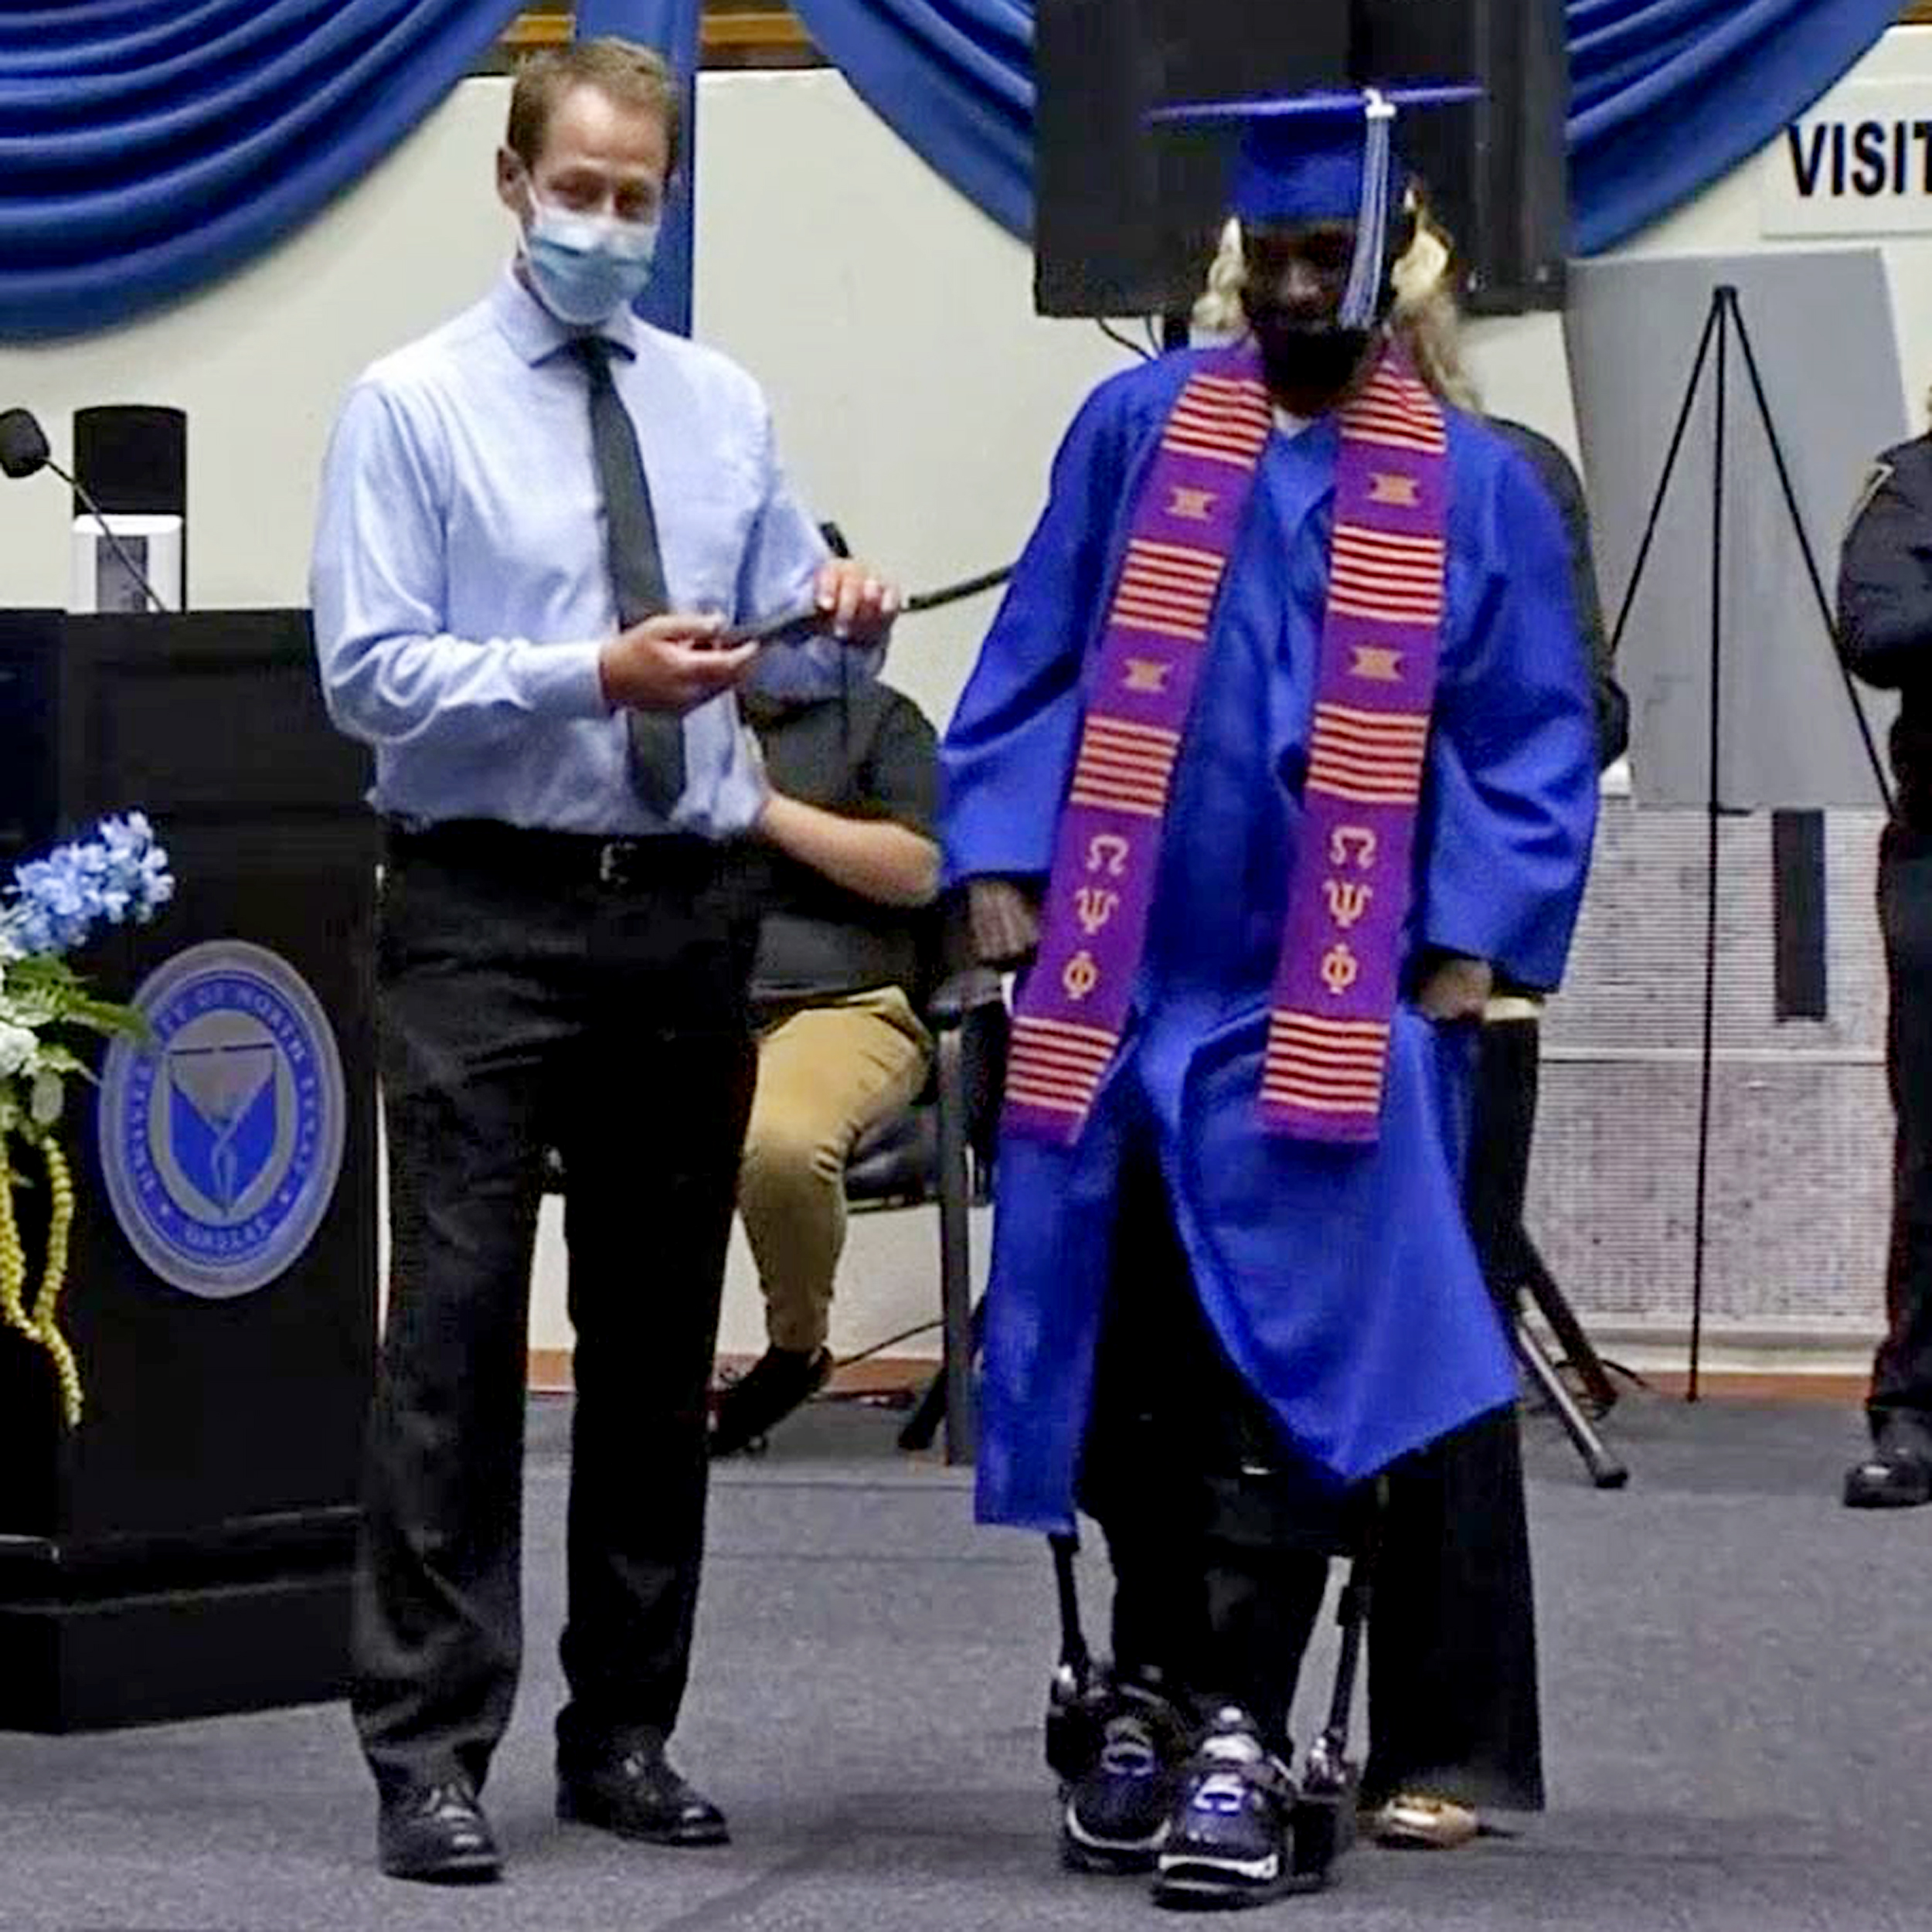 Paralyzed former football player walks across stage at college graduation